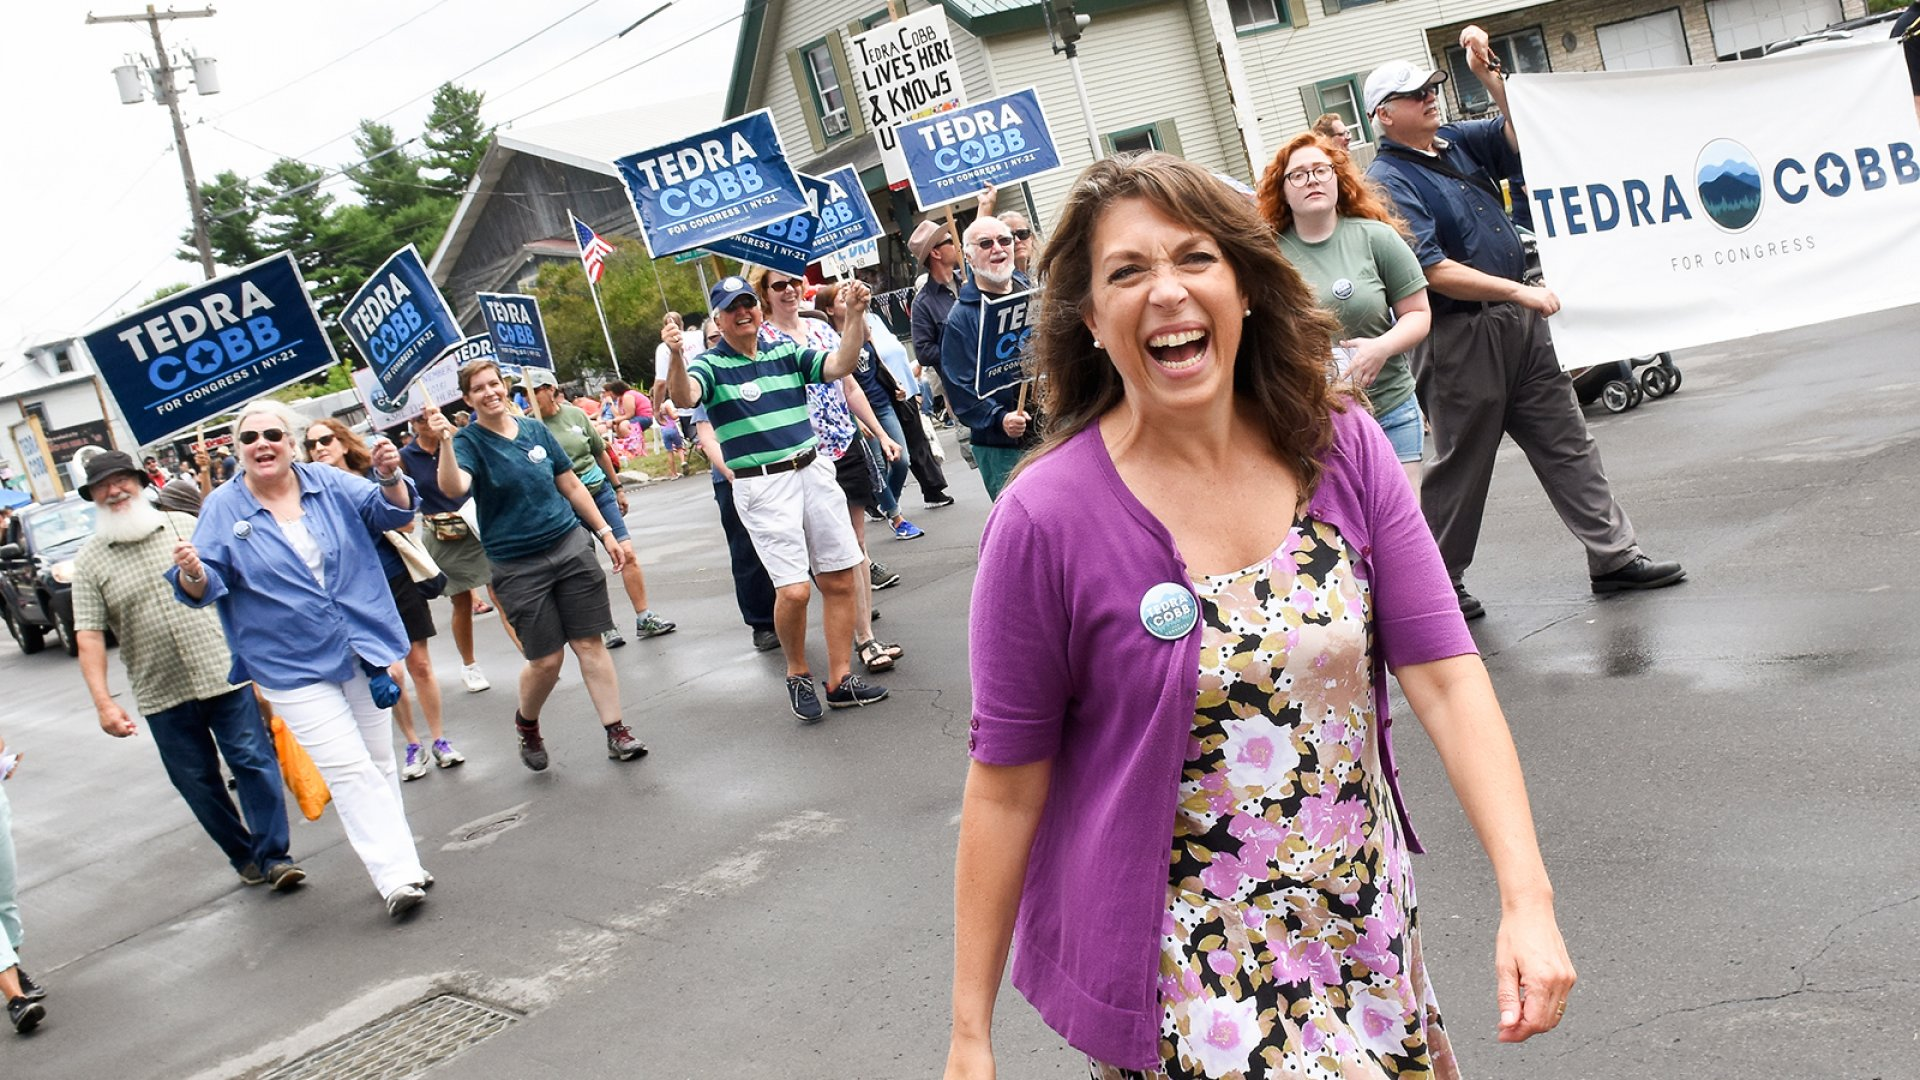 Tedra Cobb, founder and congressional candidate, rallying the crowd at the Ogdensburg, New York, International Seaway Festival parade.